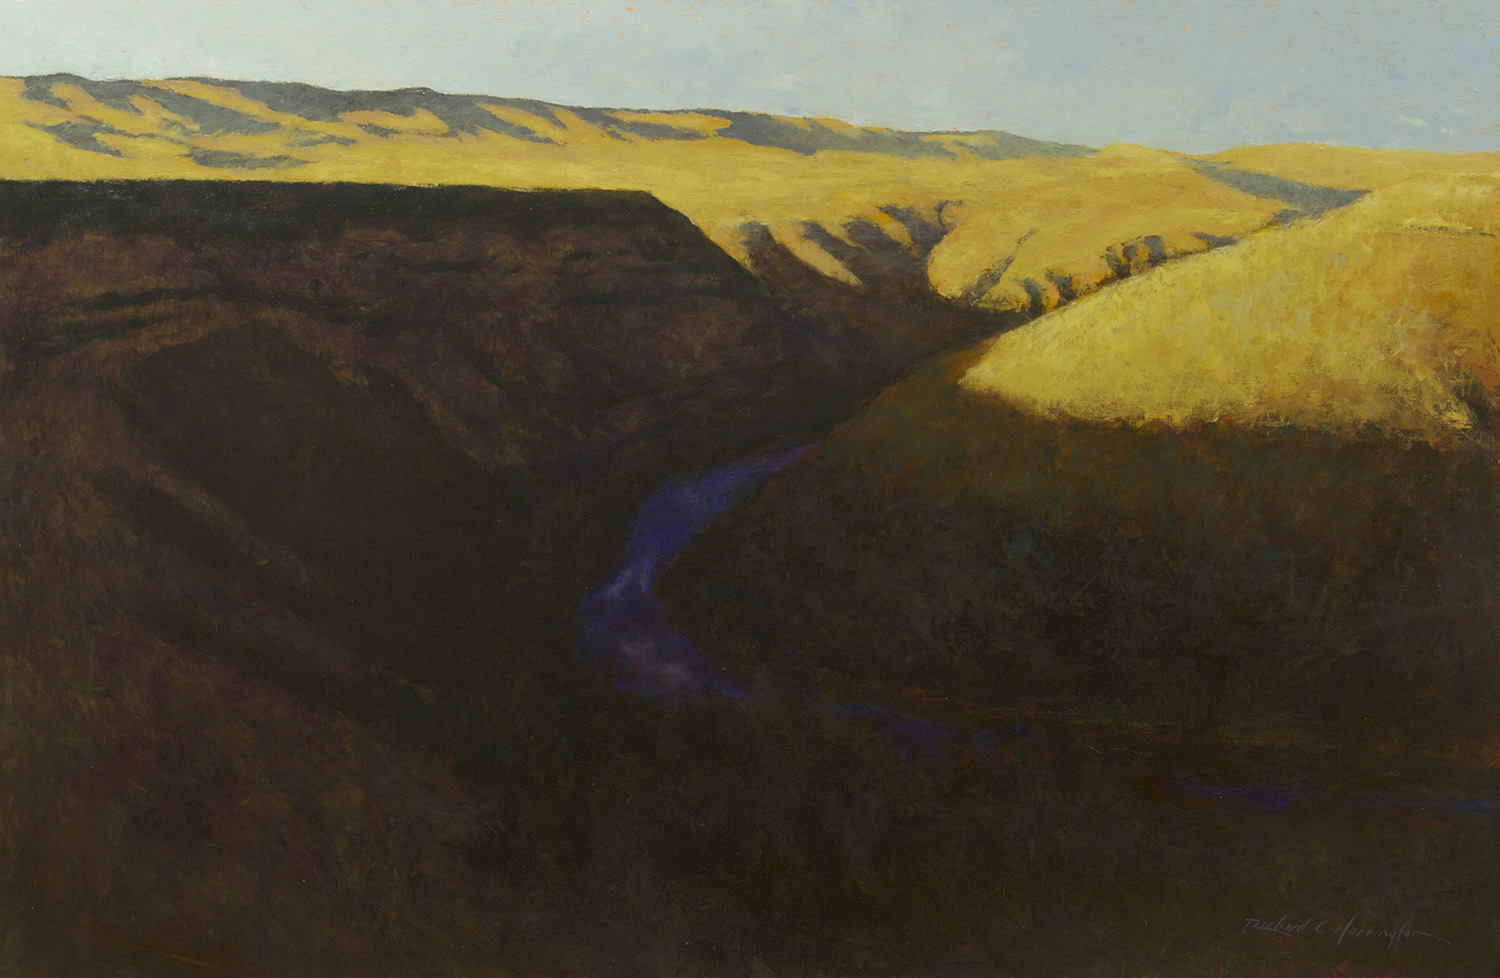 Deschutes in Shadow, 34 x 50 inches, oil on canvas. Available through the artist.